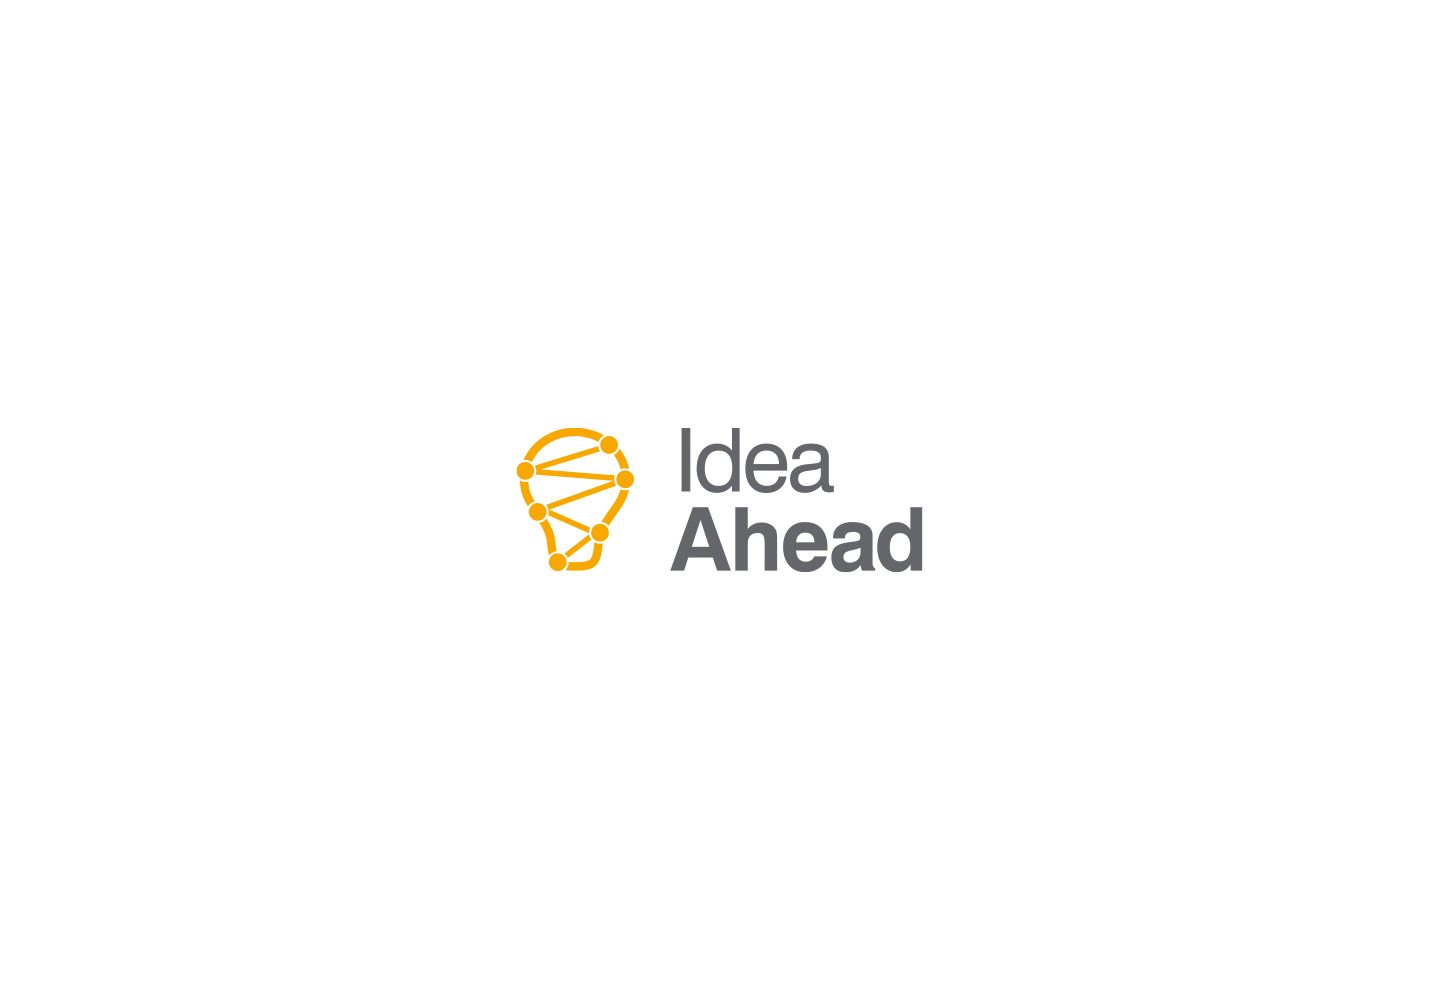 idea_ahead